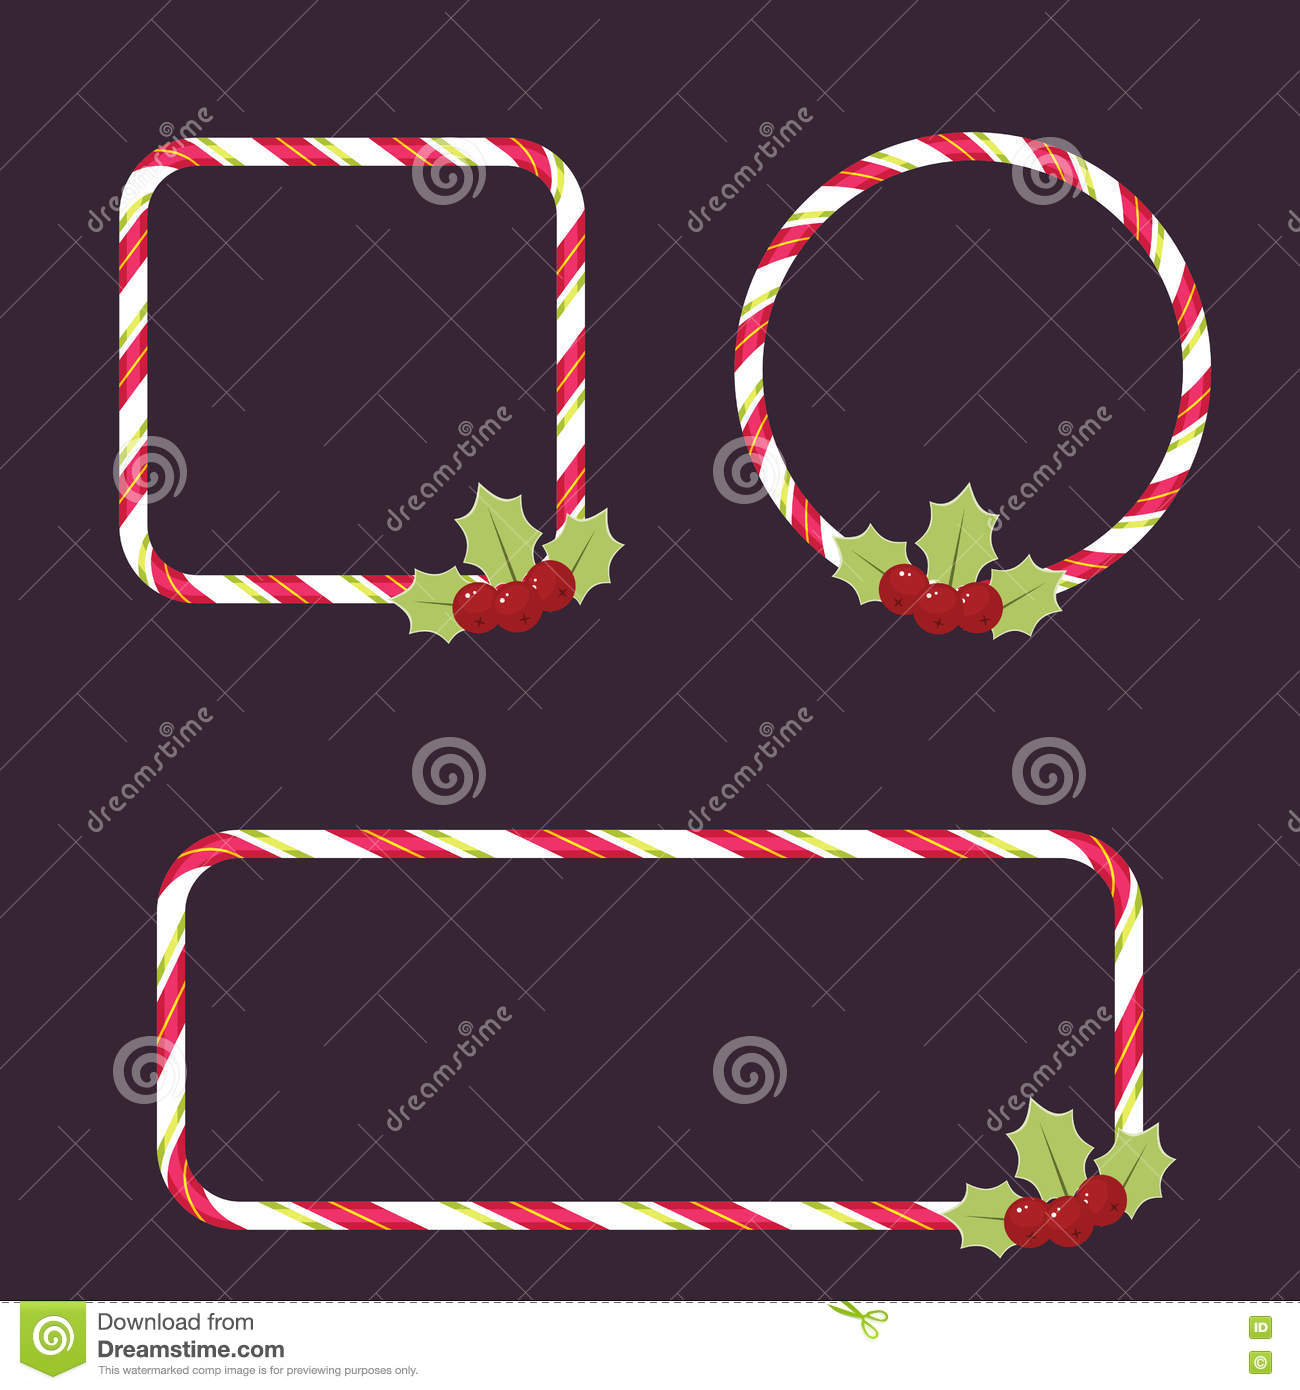 Candy Cane Frames Stock Vector Illustration Of Blank